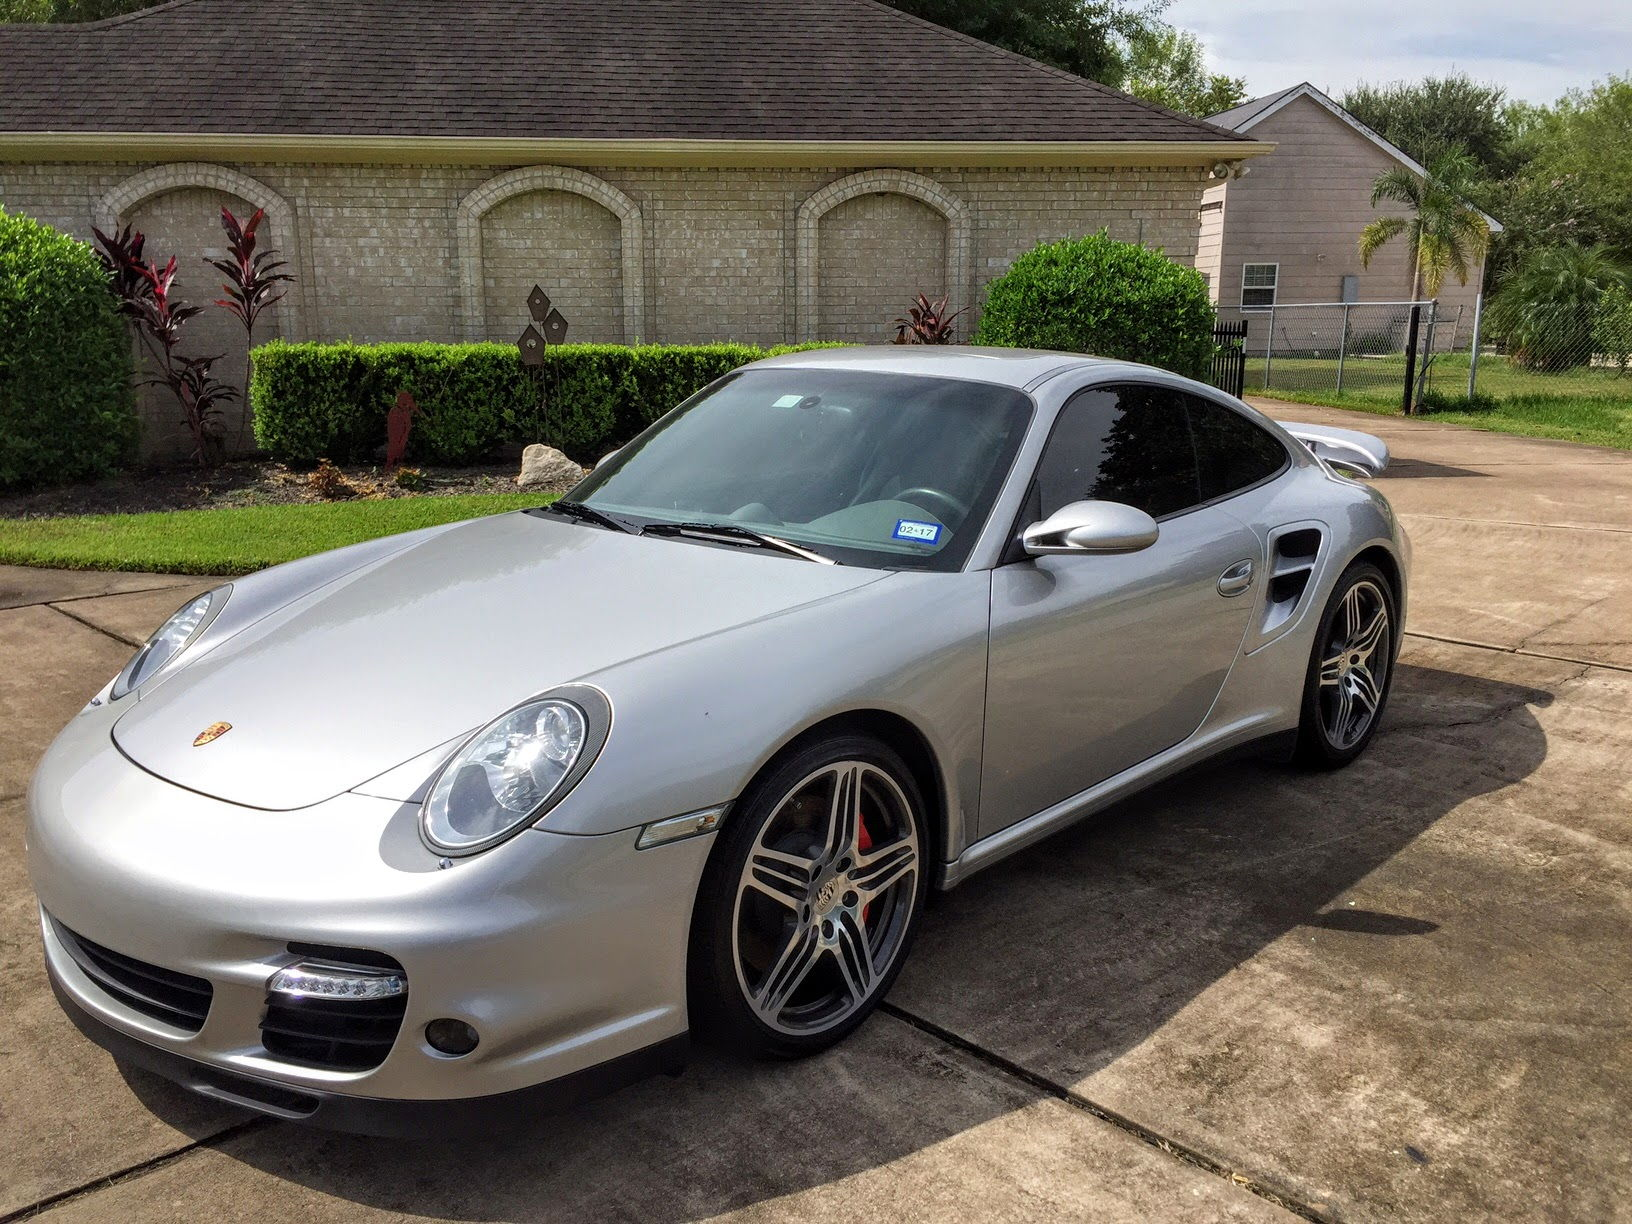 Arctic Silver 2008 997 Turbo With A 6 Speed Manual